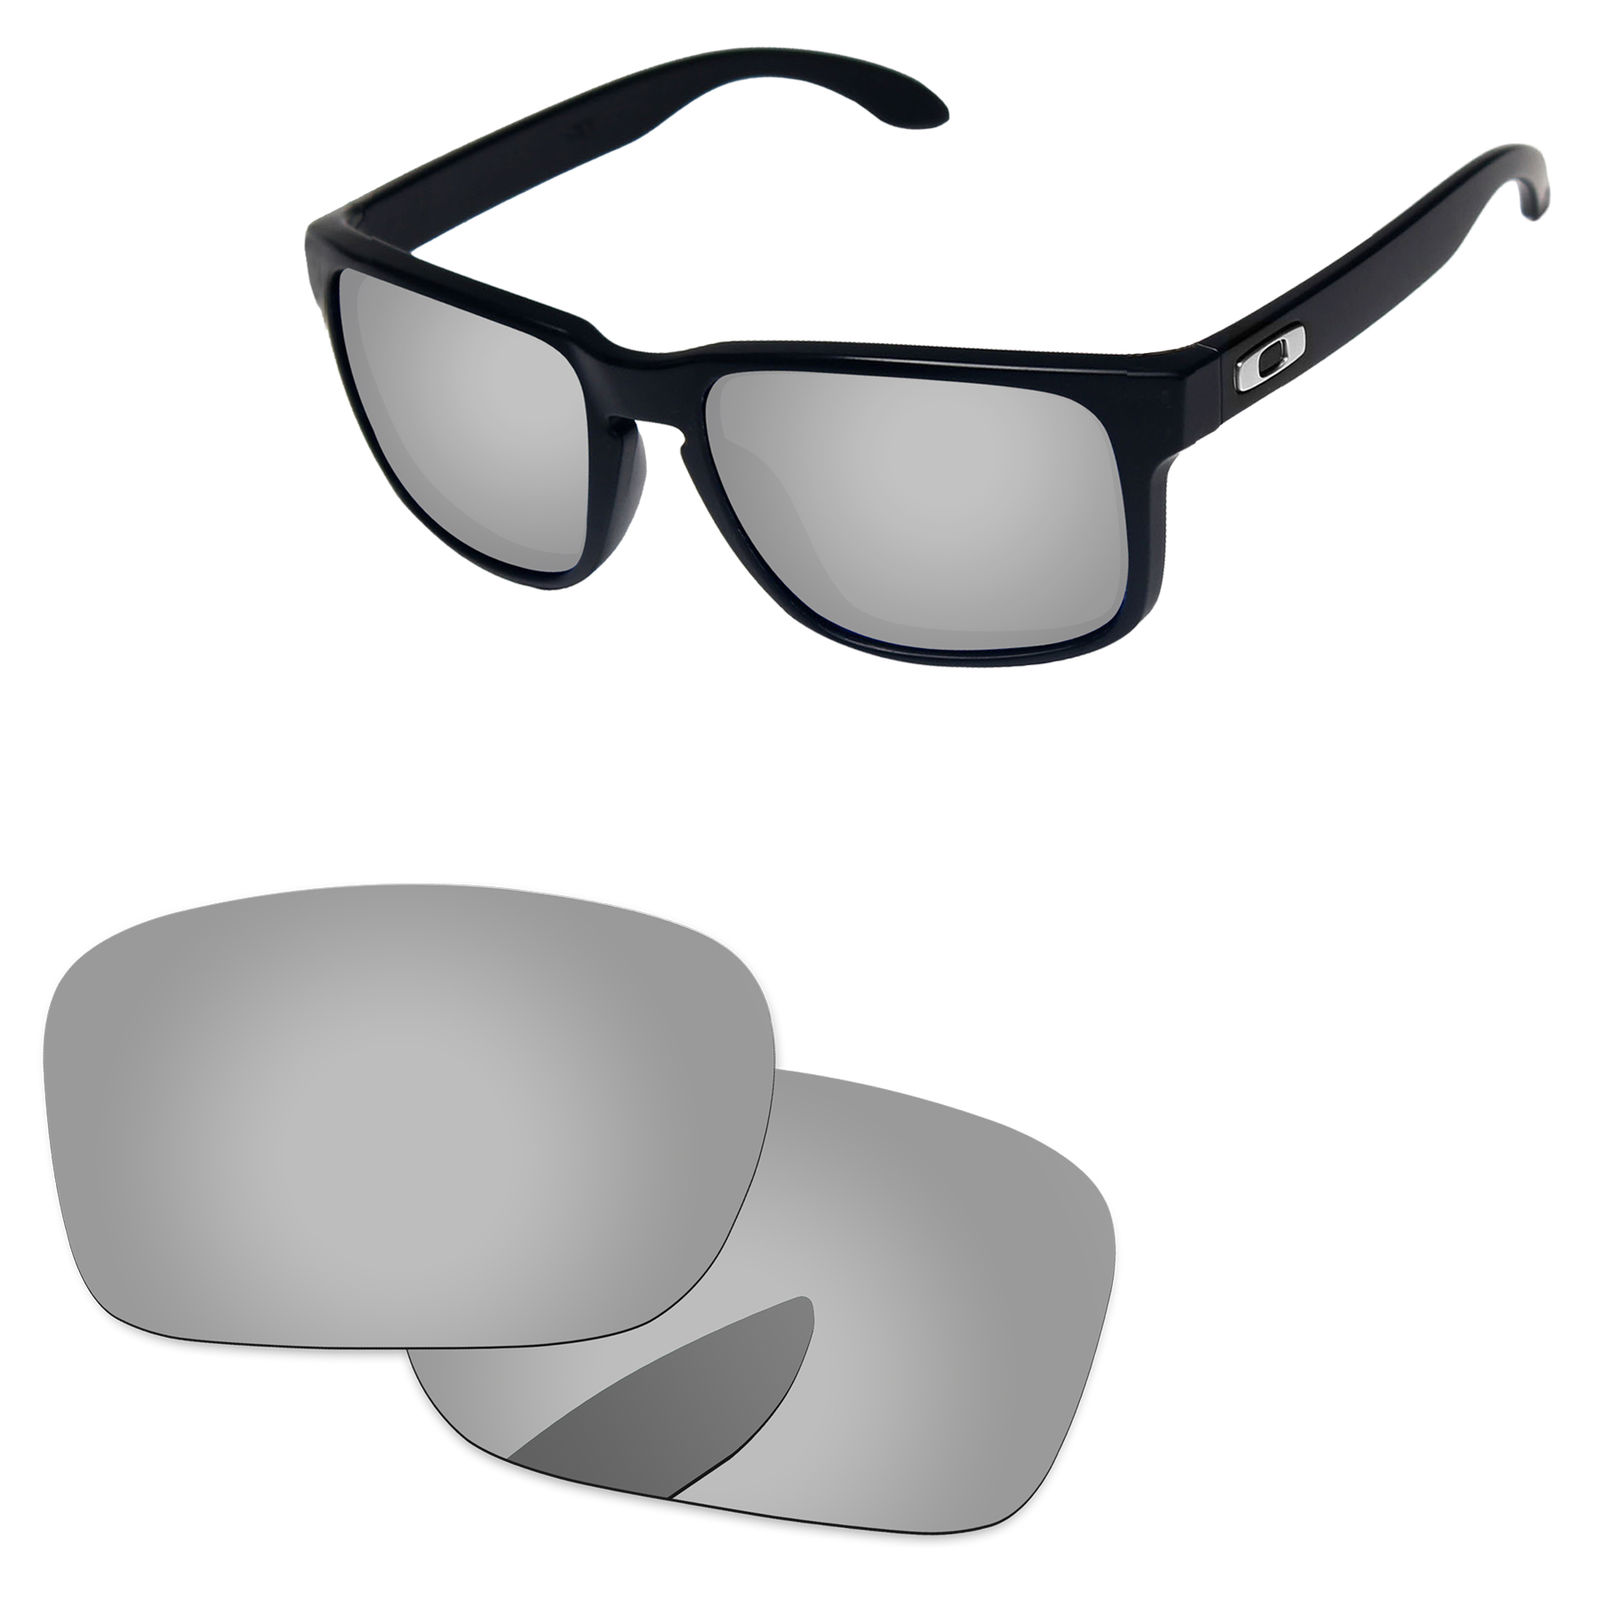 Style Switch sunglasses PolarLens POLARIZED Black Replacement Lens for